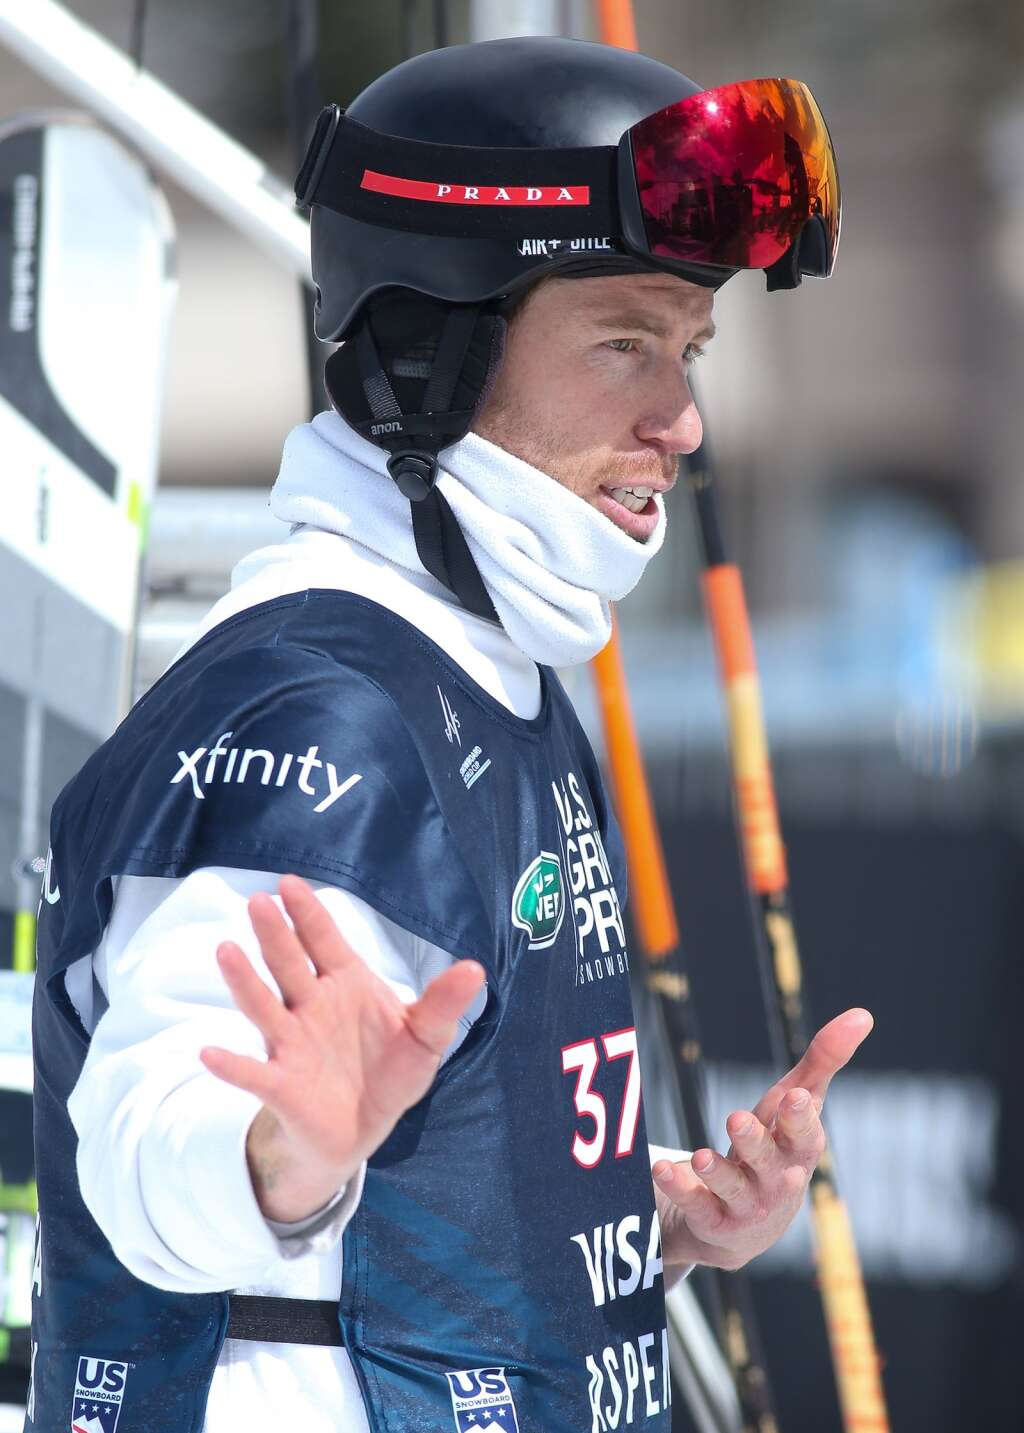 Shaun White talks through his second run during the men's snowboard halfpipe competition at the U.S. Grand Prix and World Cup on Sunday, March 21, 2021, at Buttermilk Ski Area in Aspen. Photo by Austin Colbert/The Aspen Times.